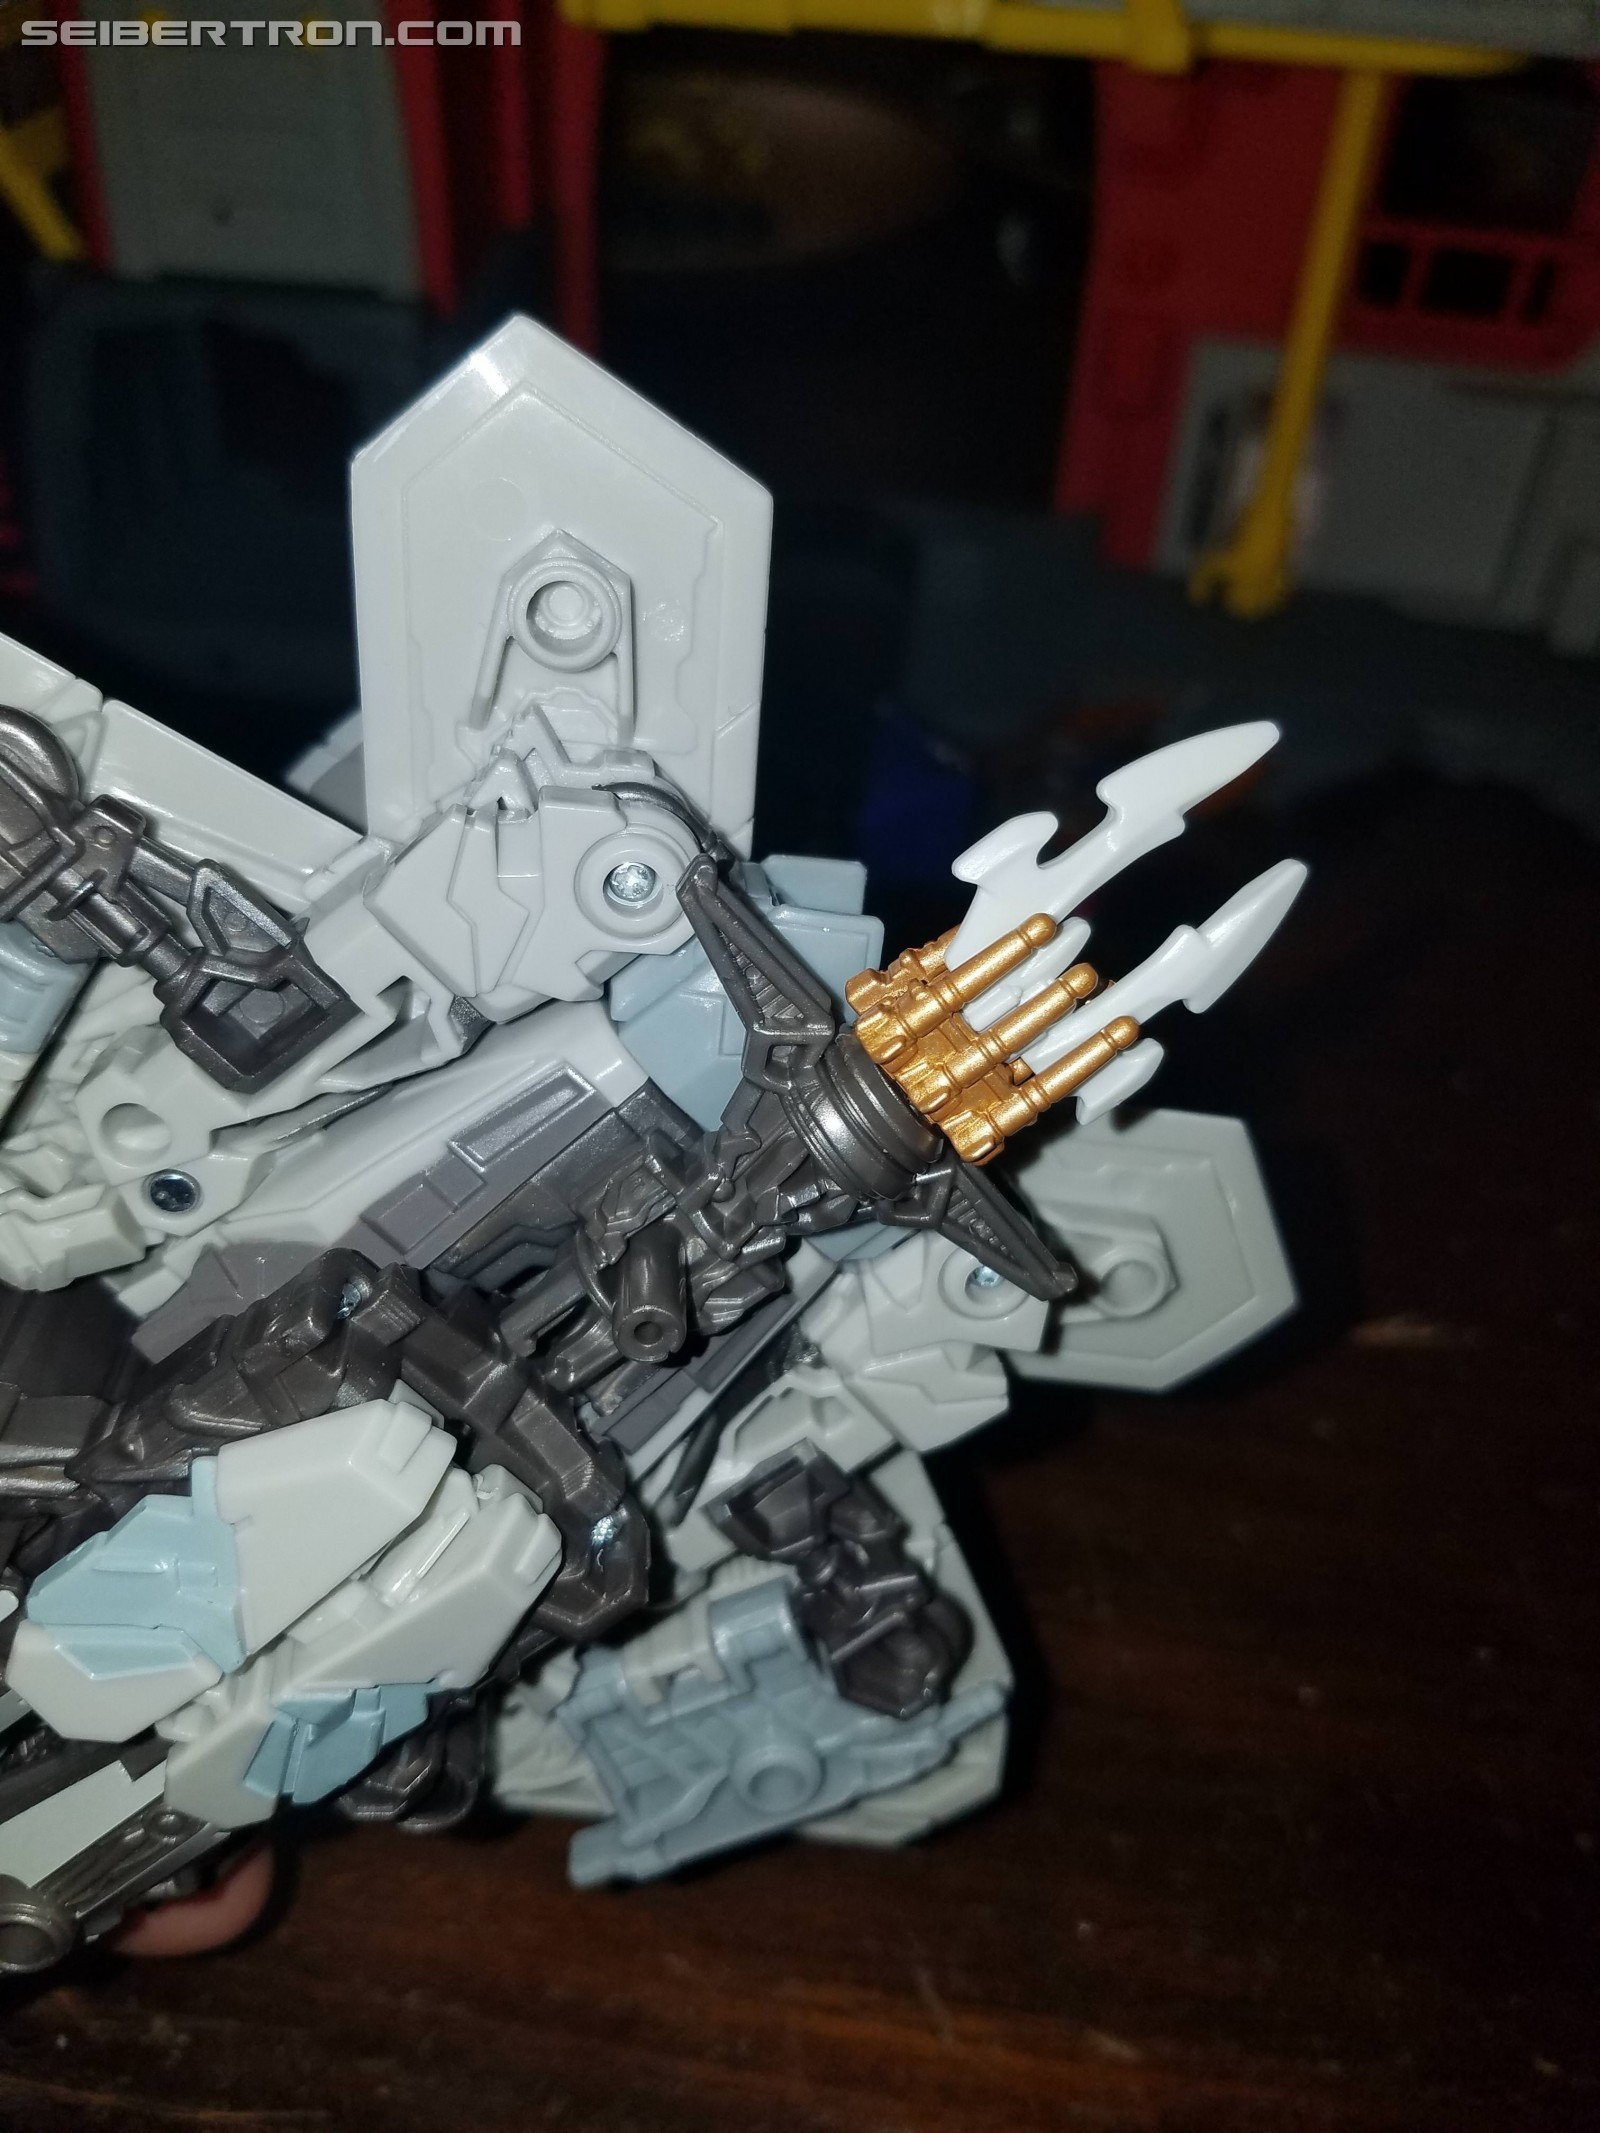 Transformers News: Pictorial Reviews for Transformers Studio Series Starscream and Optimus Prime